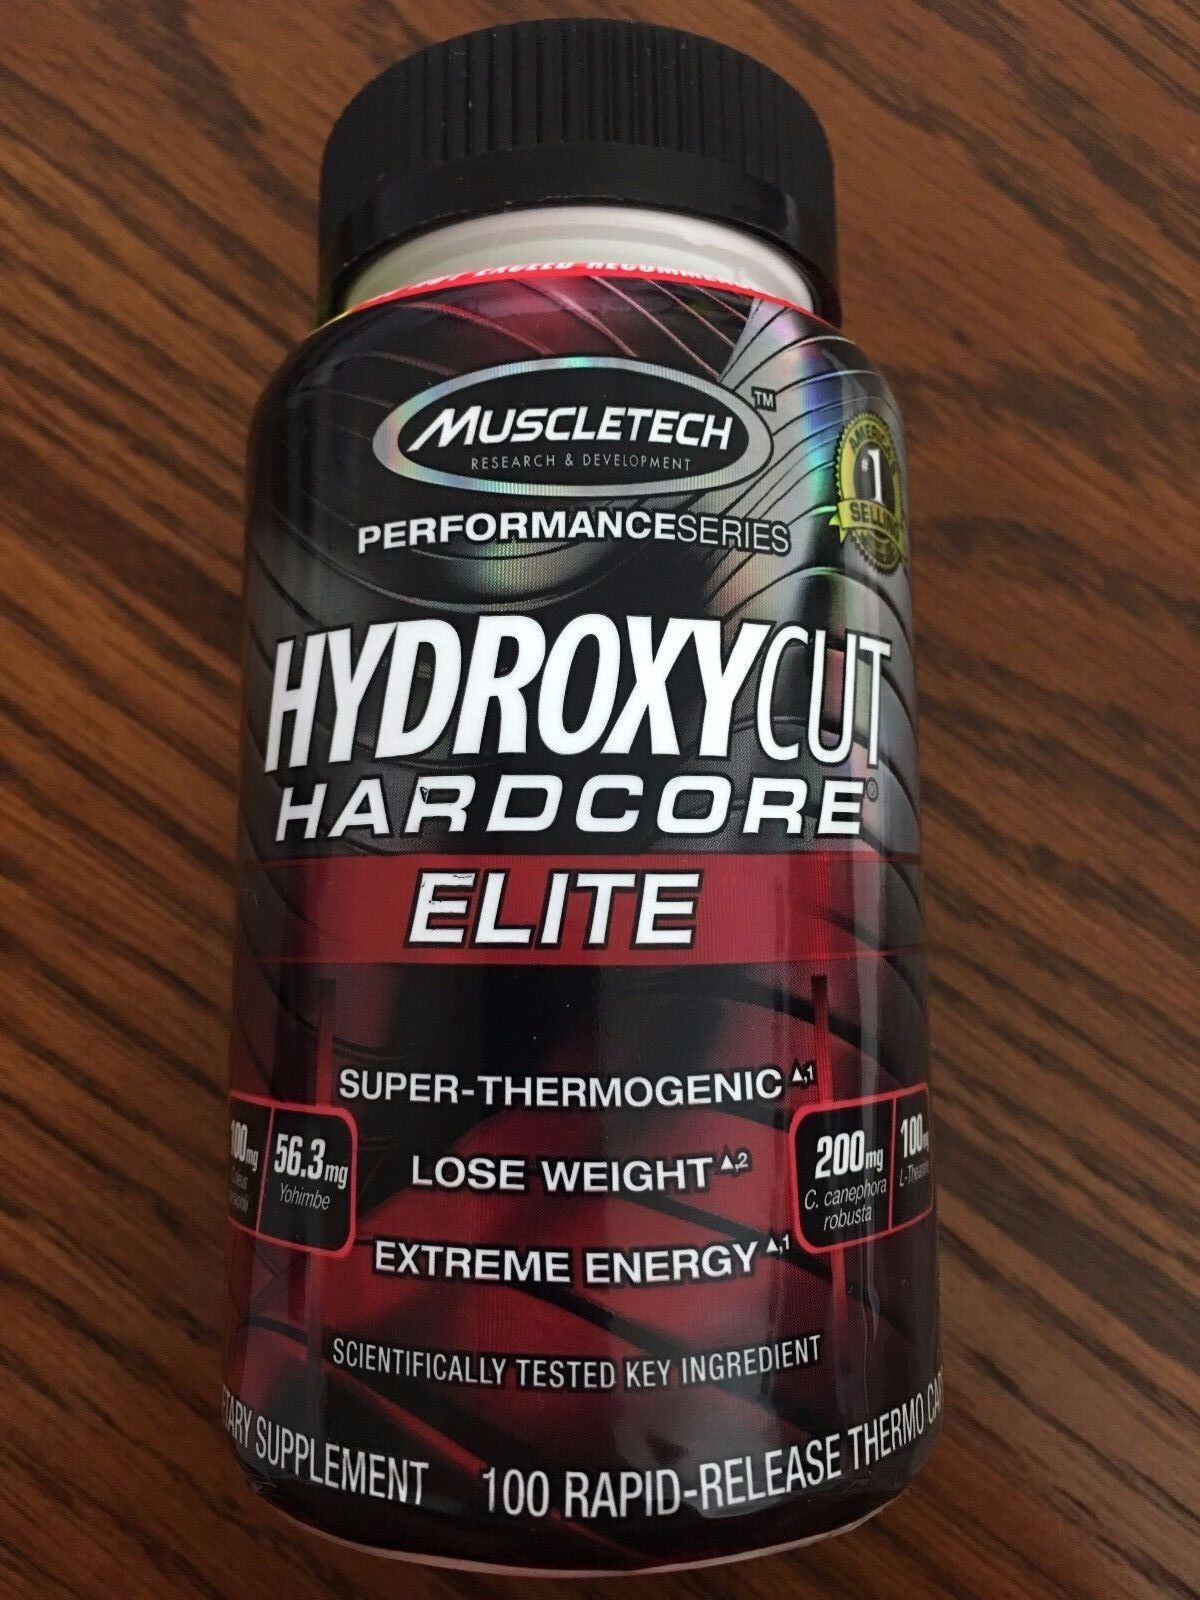 MuscleTech HYDROXYCUT Hardcore Elite 100 ct Free Ship 2022 E